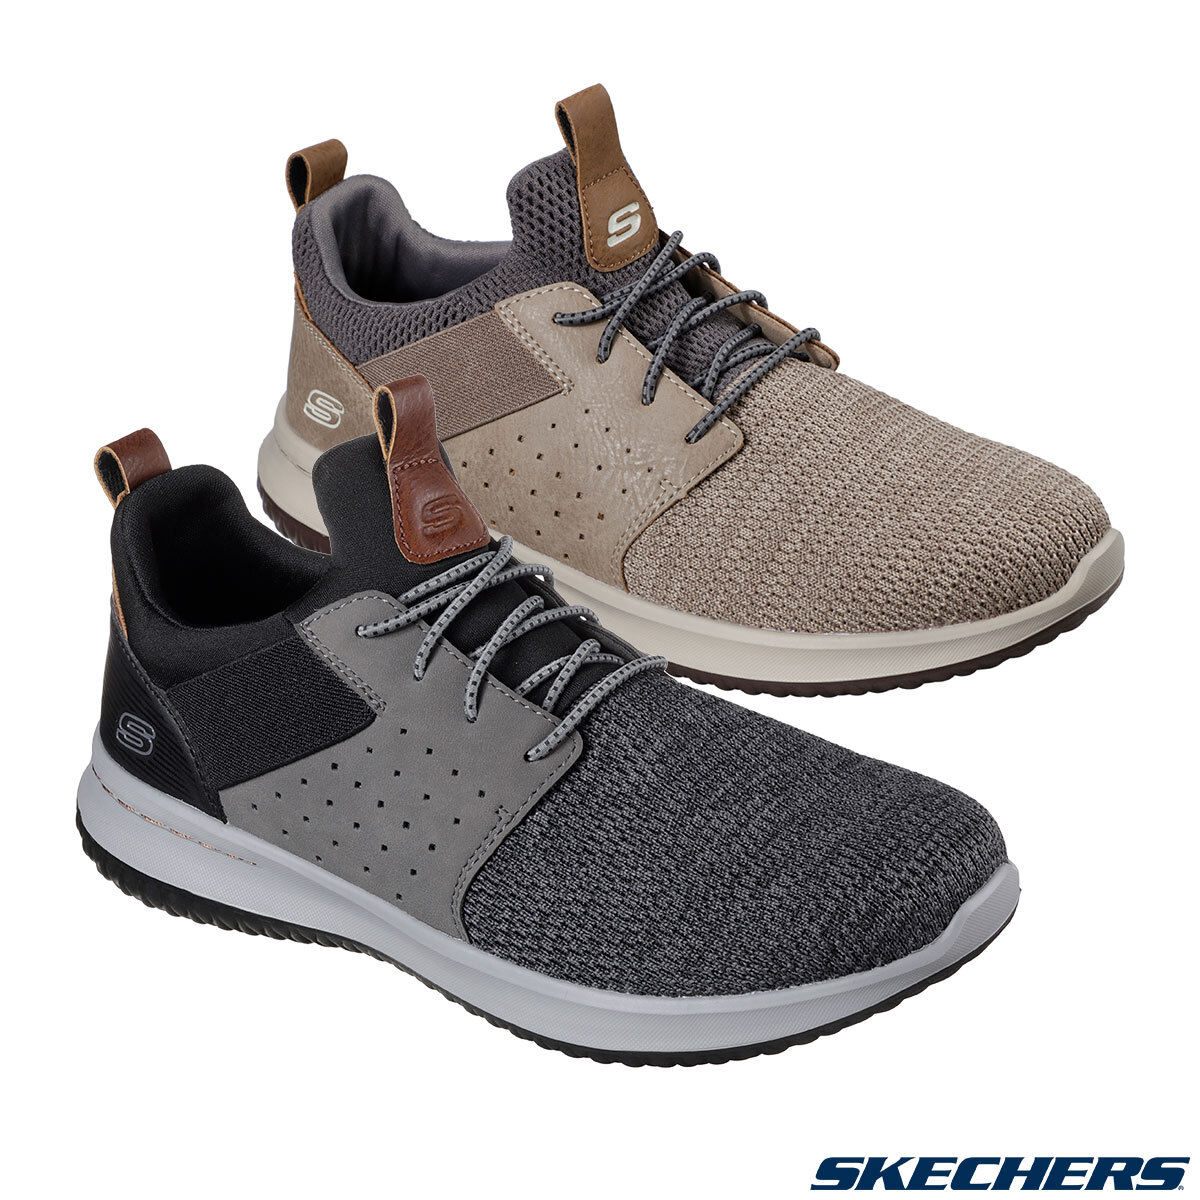 boicotear casual Se infla  Skechers Delson-Camben Men's Shoes in 2 Colours and 6 Sizes | Costco UK